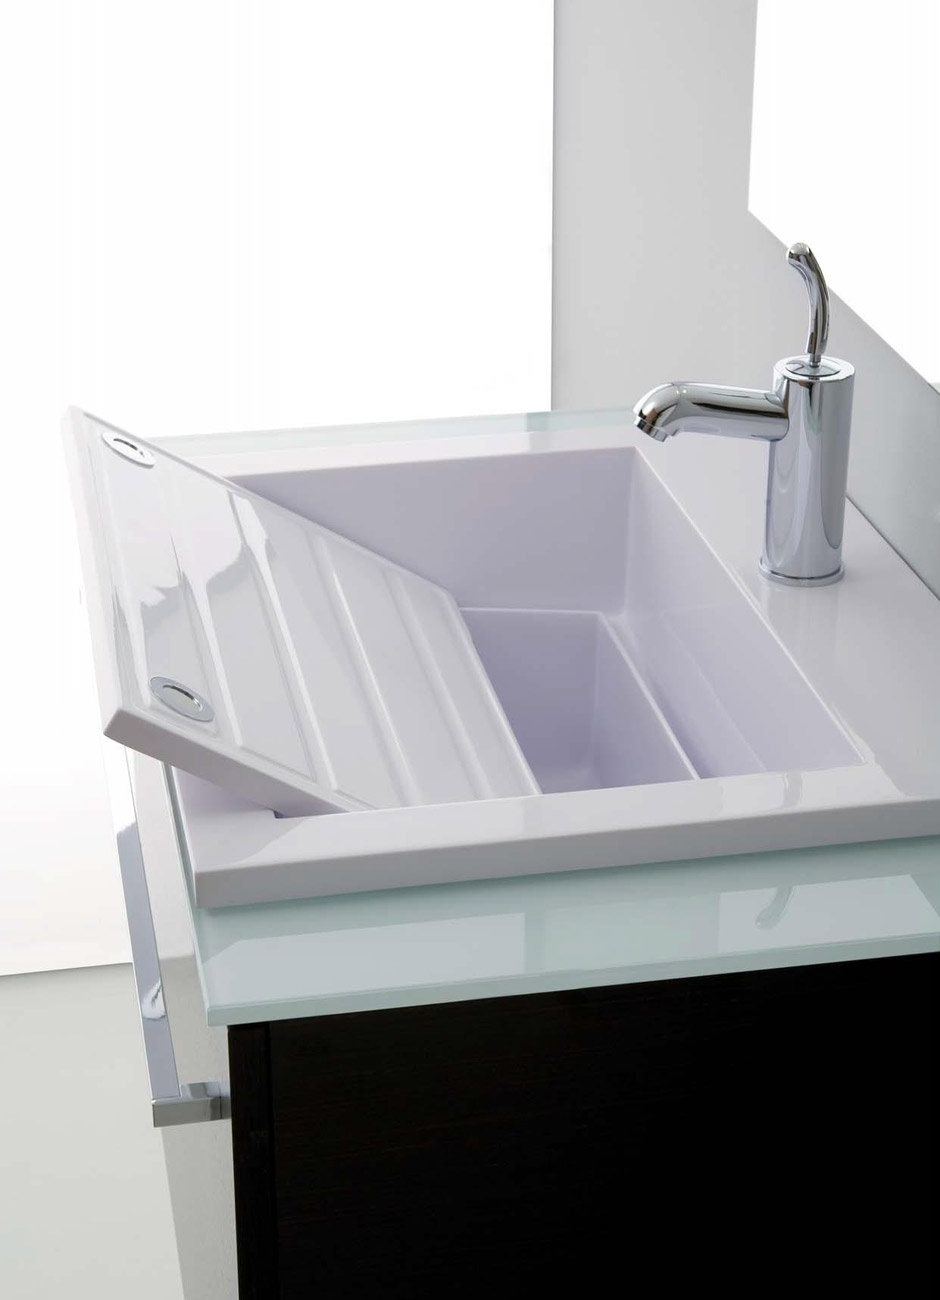 Emejing Lavandini Bagno Con Mobile Images - Skilifts.us - skilifts.us